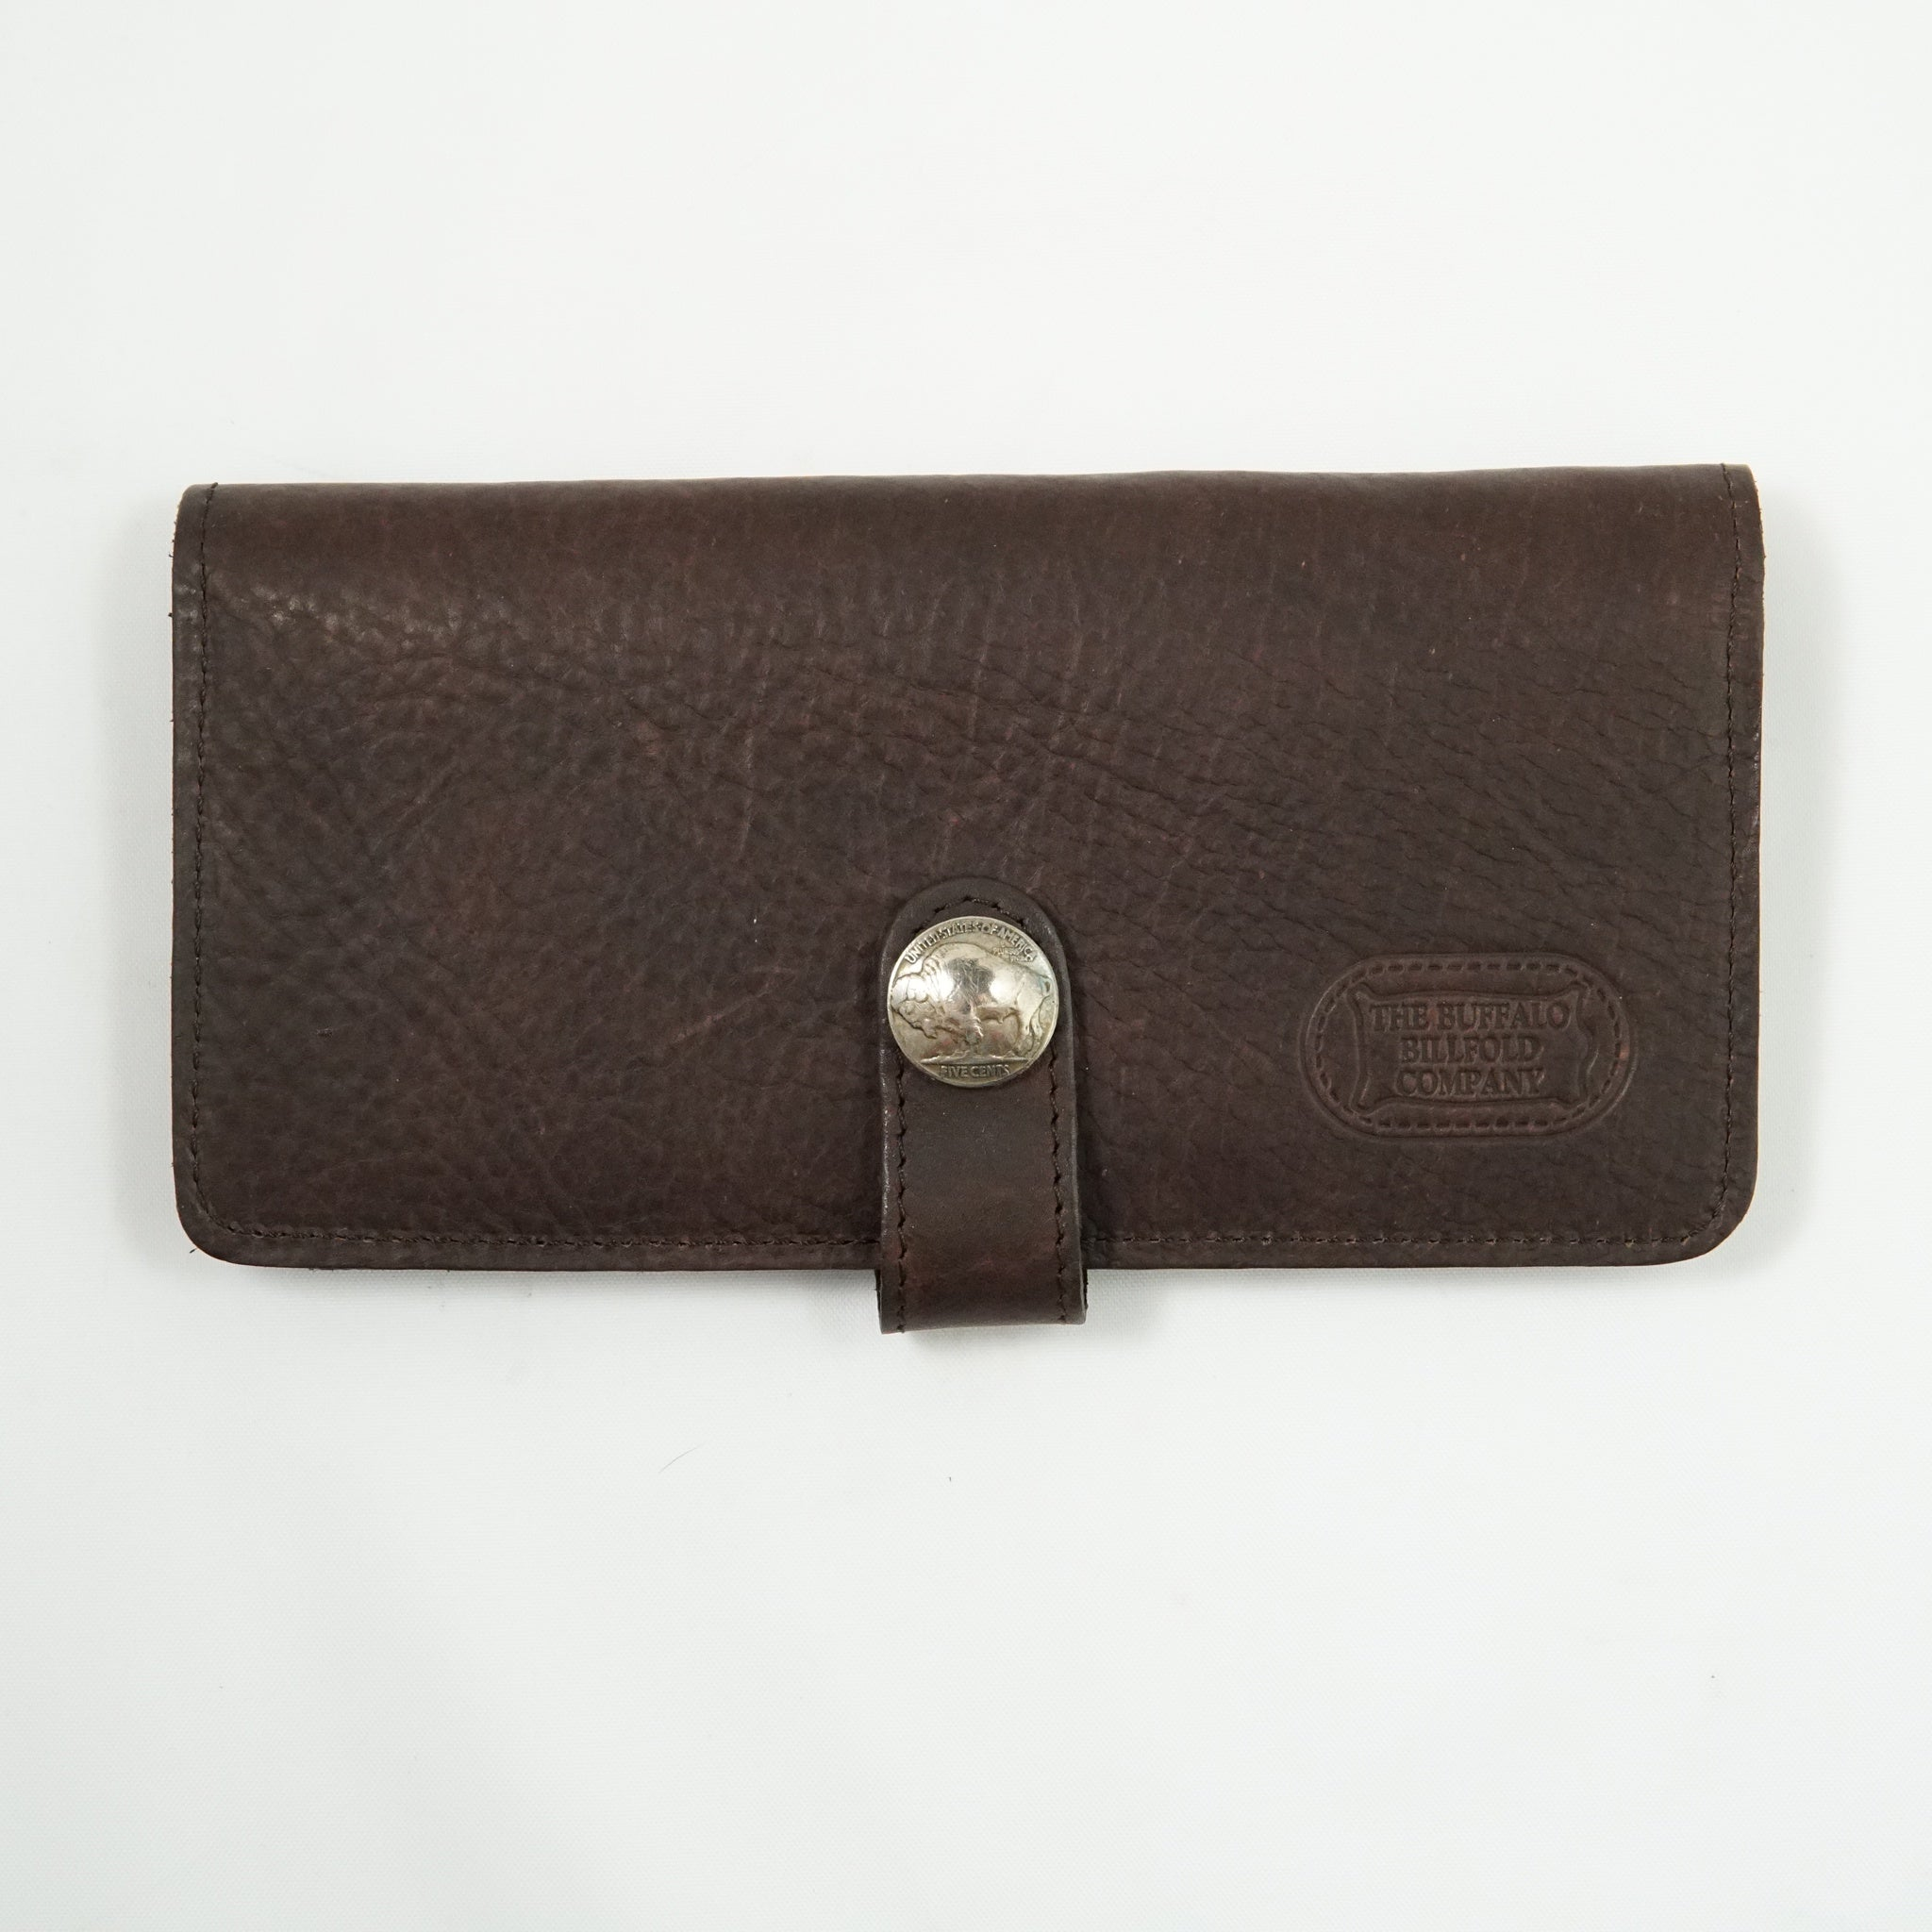 BUFFALO HIDE SLIM CLUTCH #10915